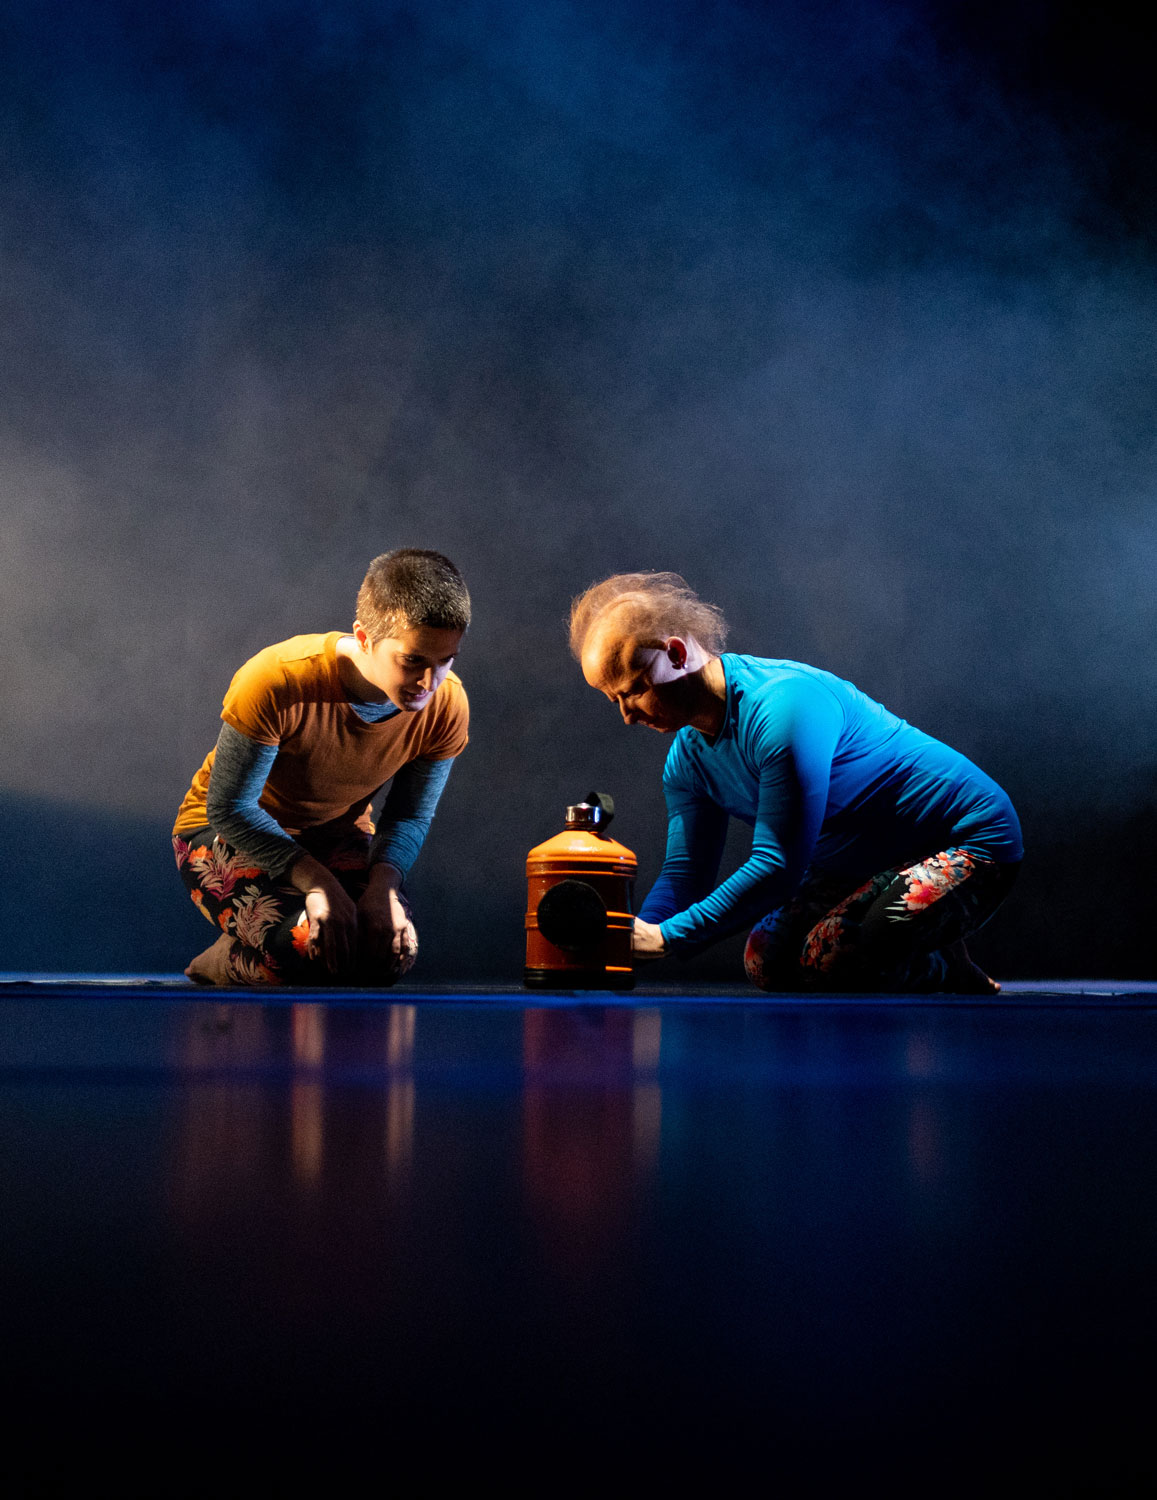 A wide portrait shot of two women crouching onstage either side of a large yellow water bottle.